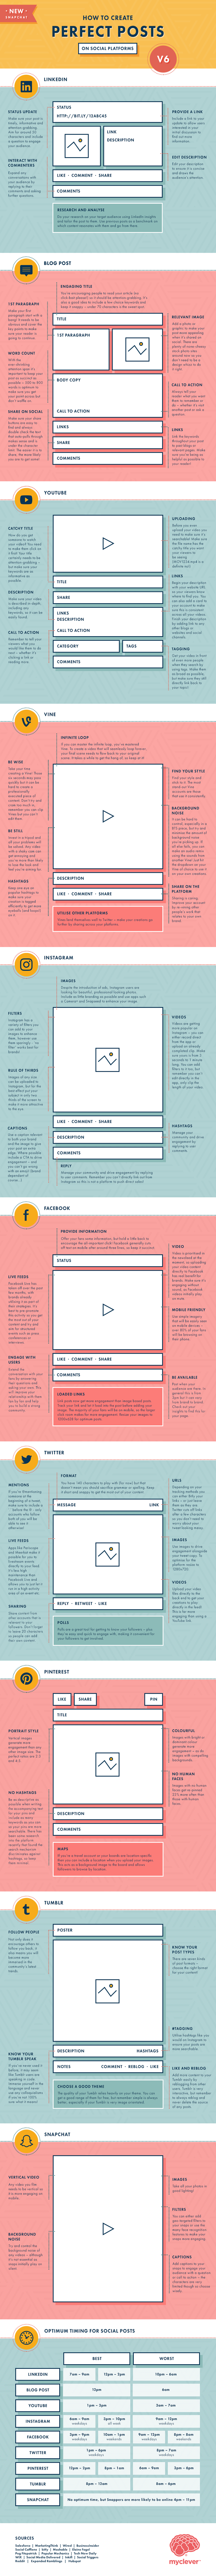 How To Create Perfect Posts on Social Platforms [Infographic] | Social Media Today